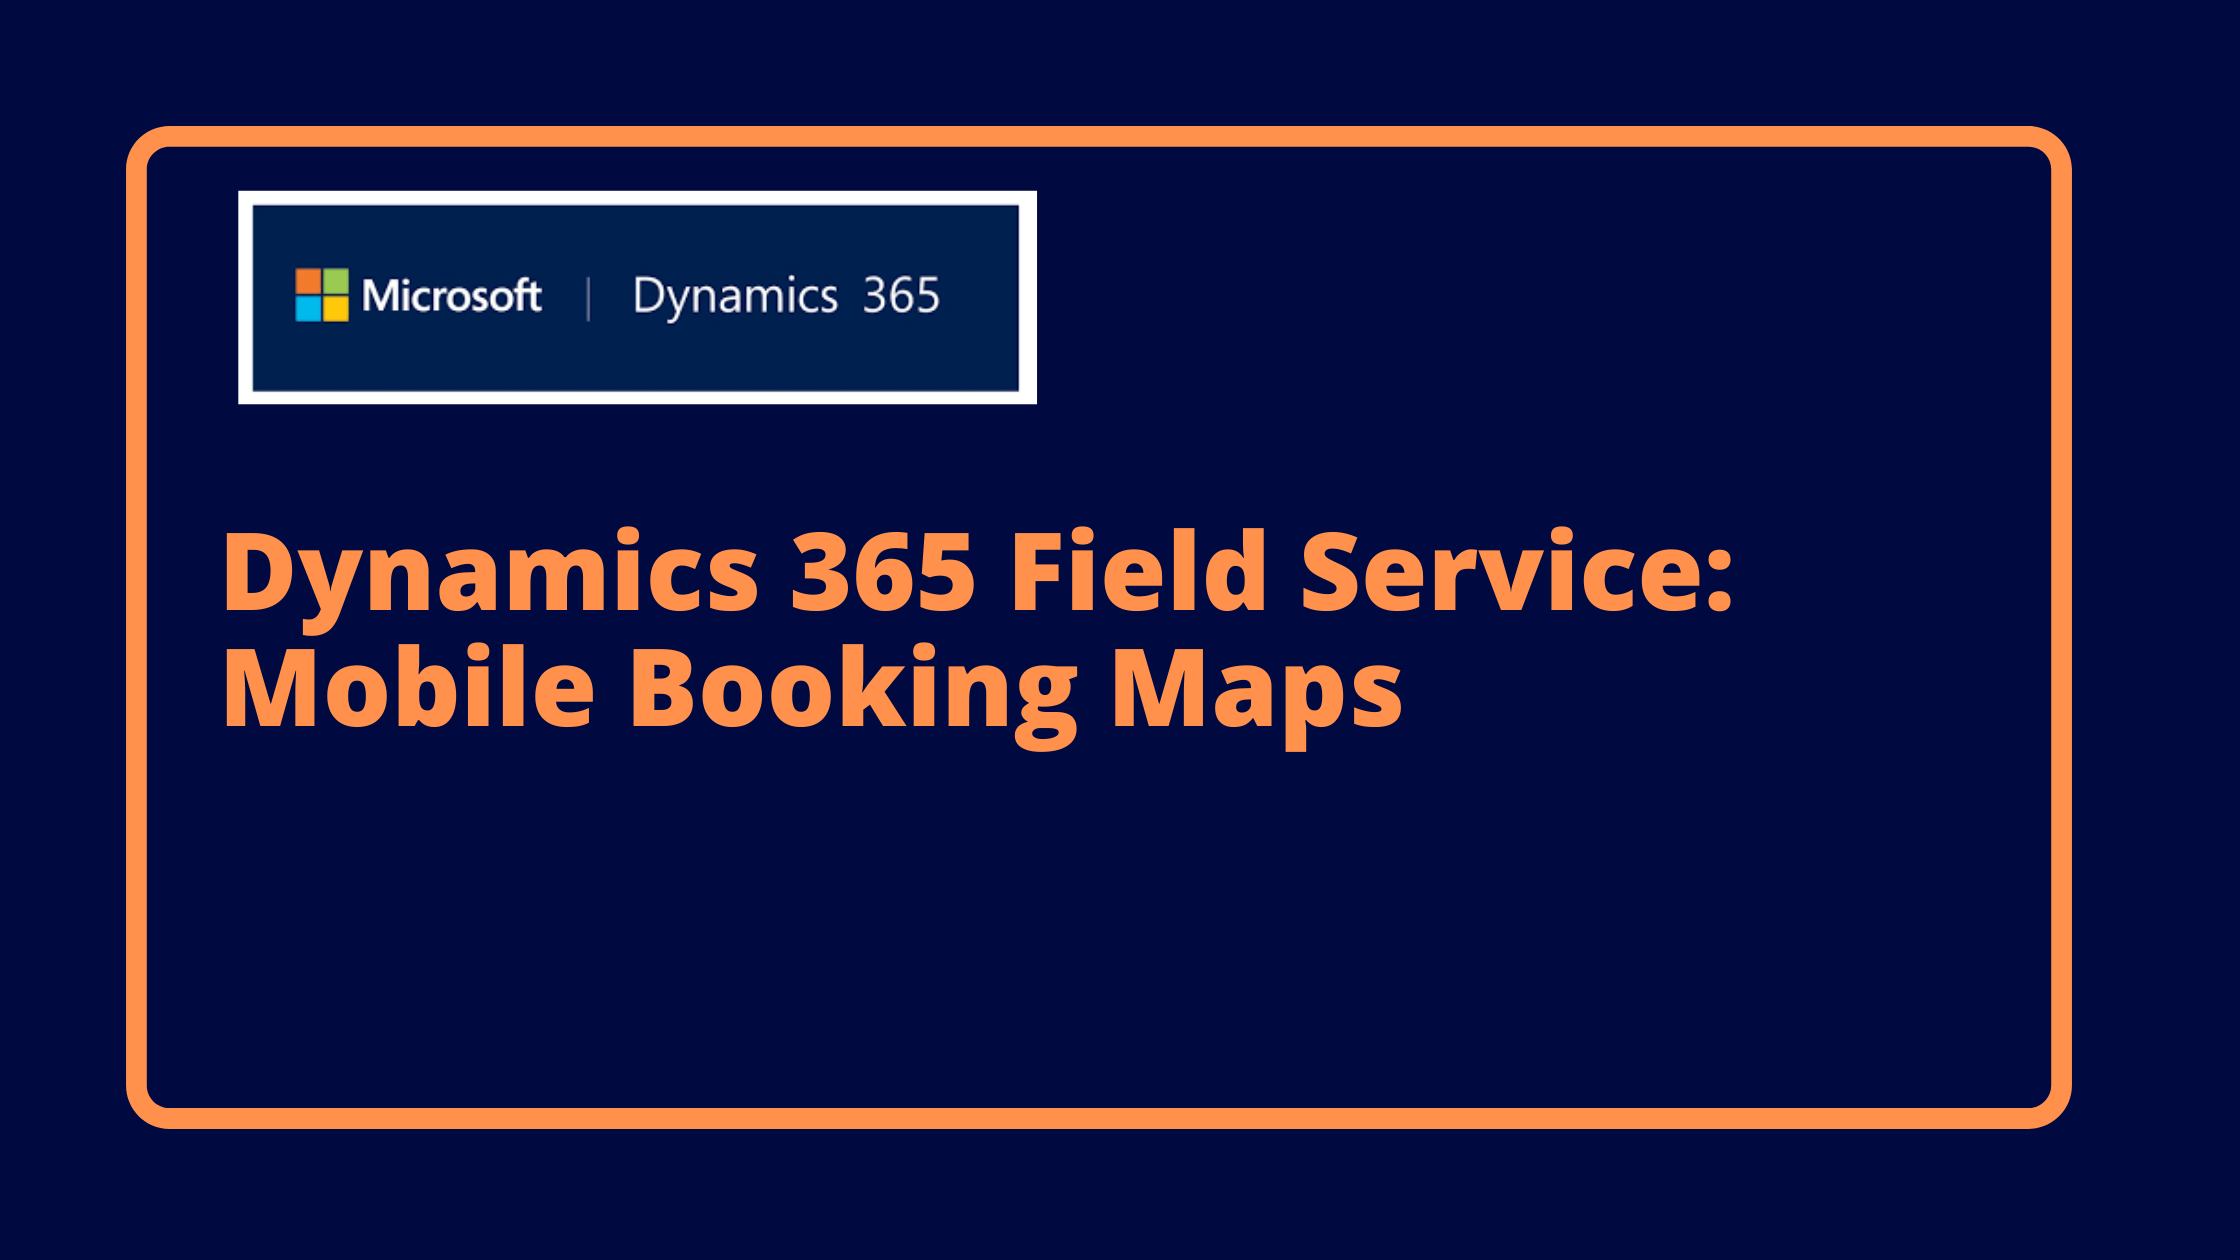 Dynamics 365 Field Service: Mobile Booking Maps